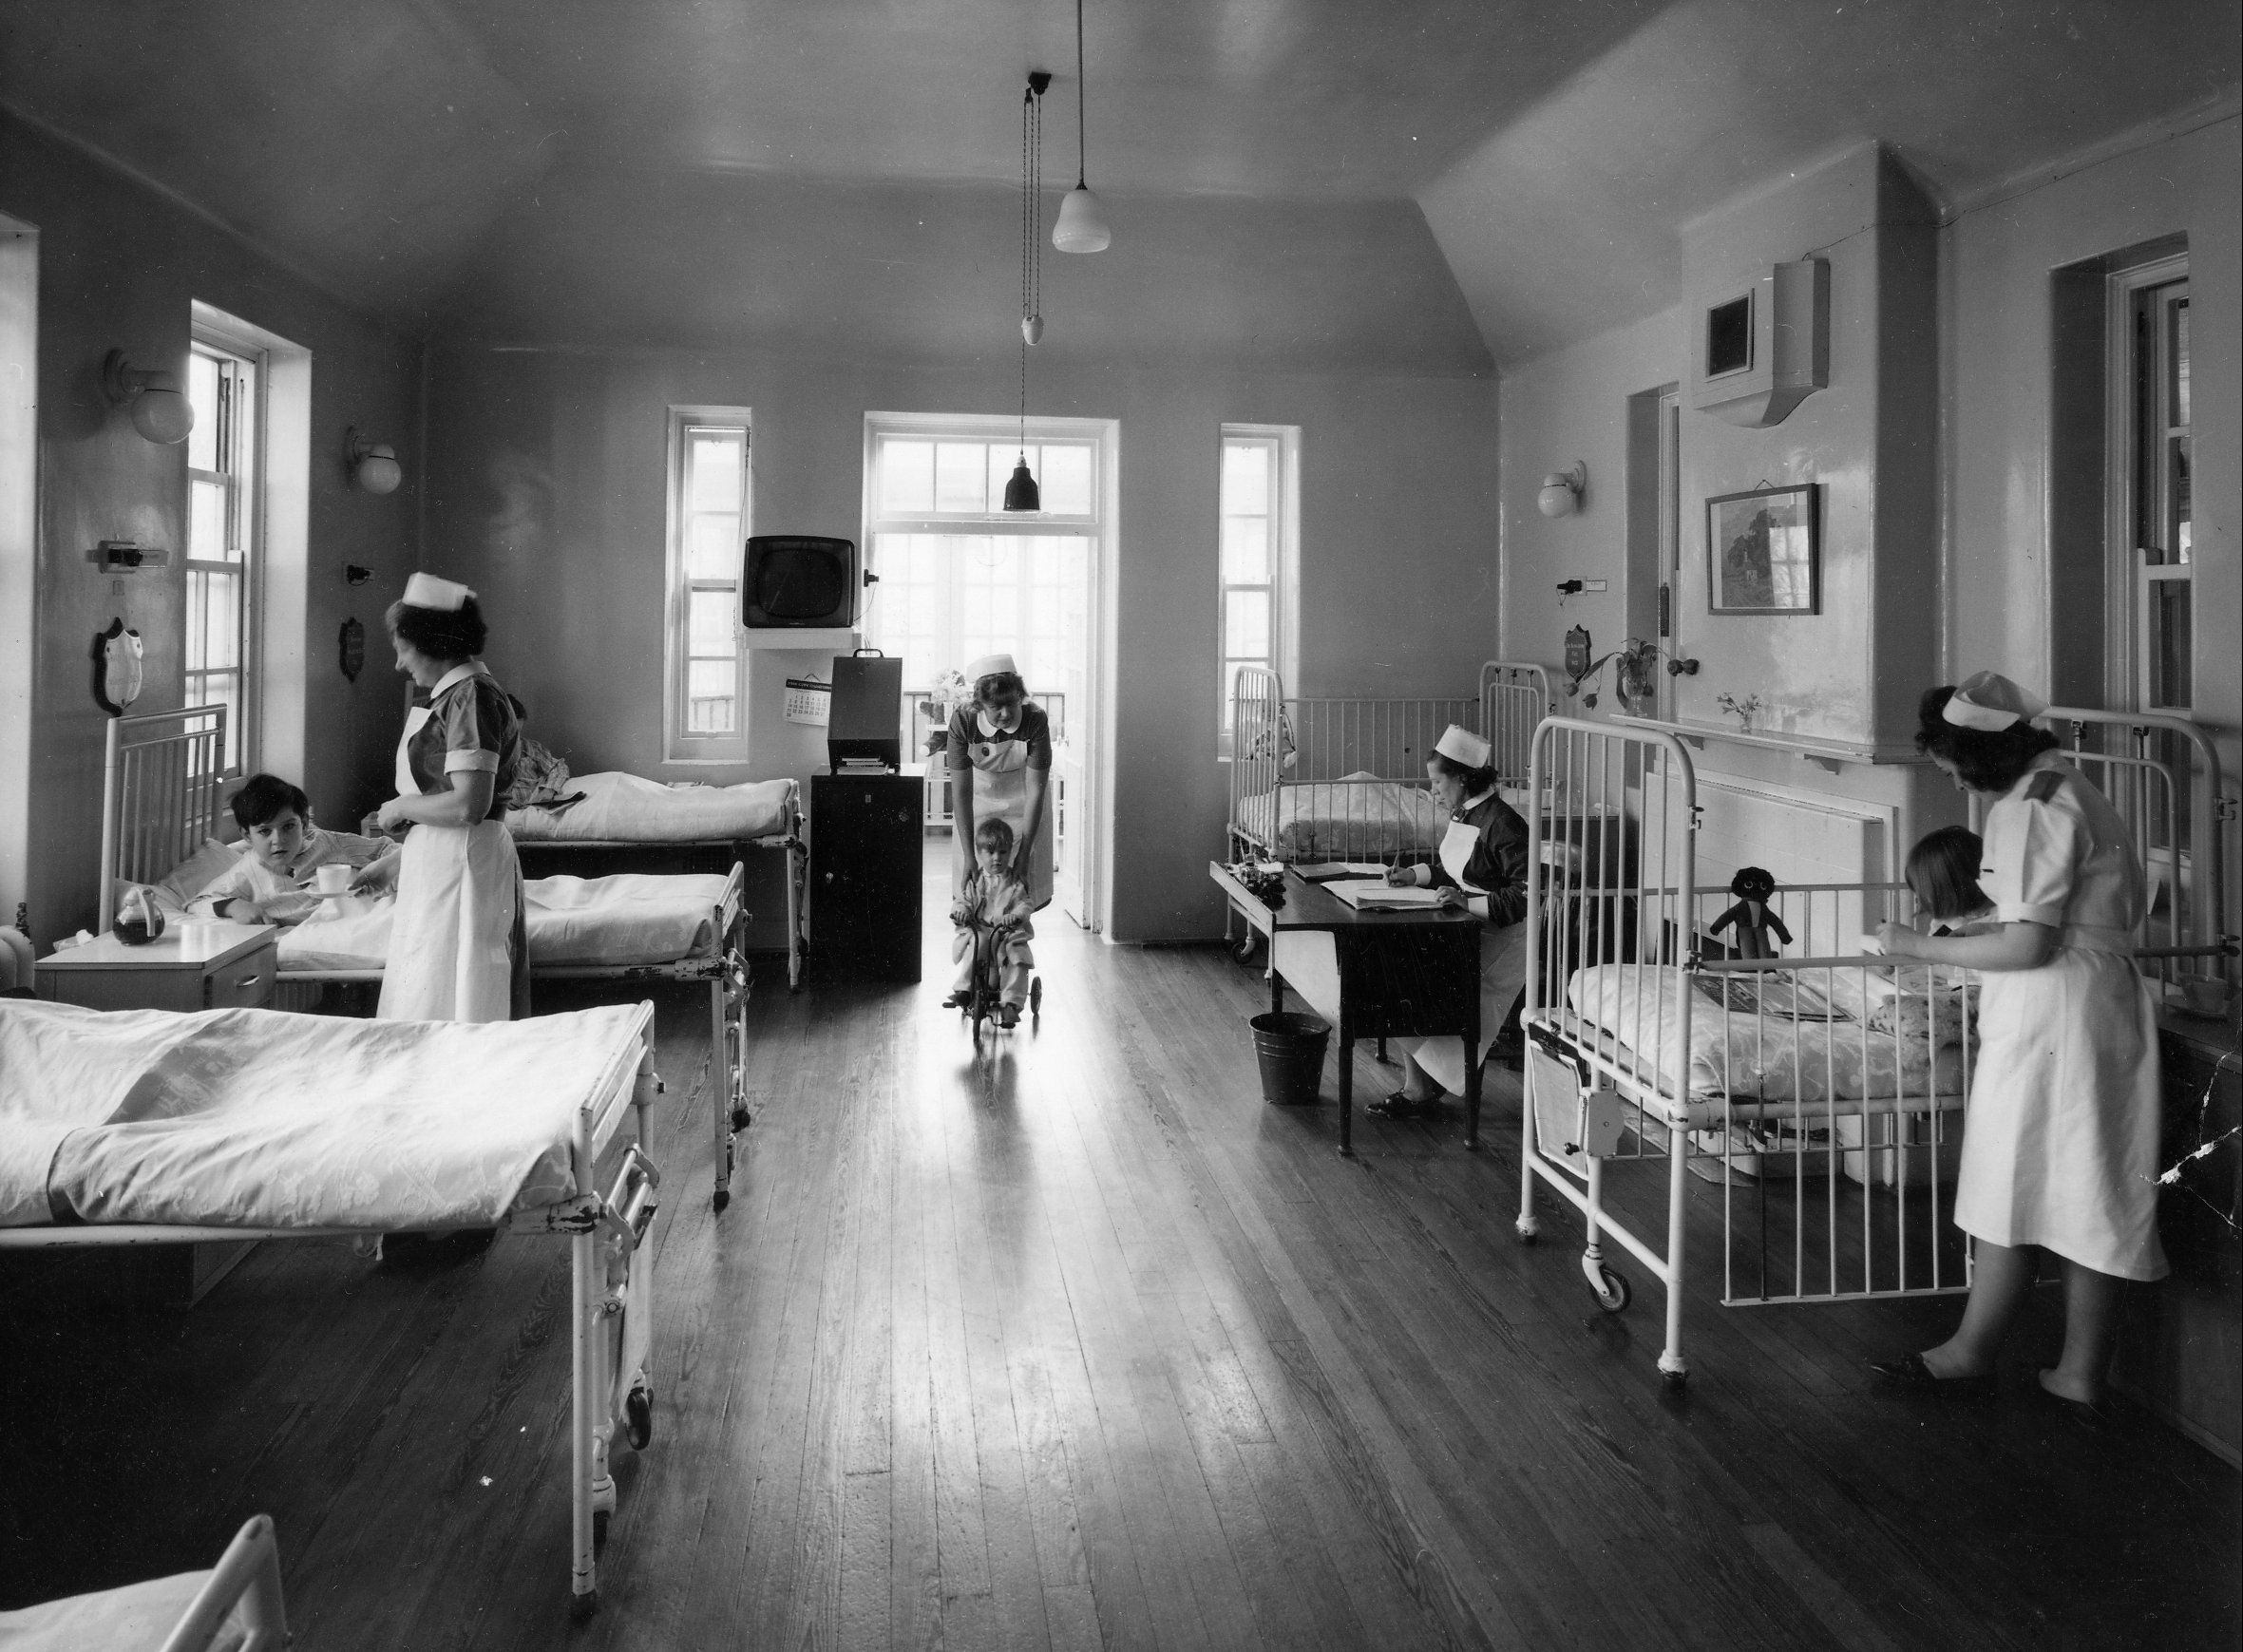 Childrens Ward Quot D5 Quot Photograph From Ashford Hospital